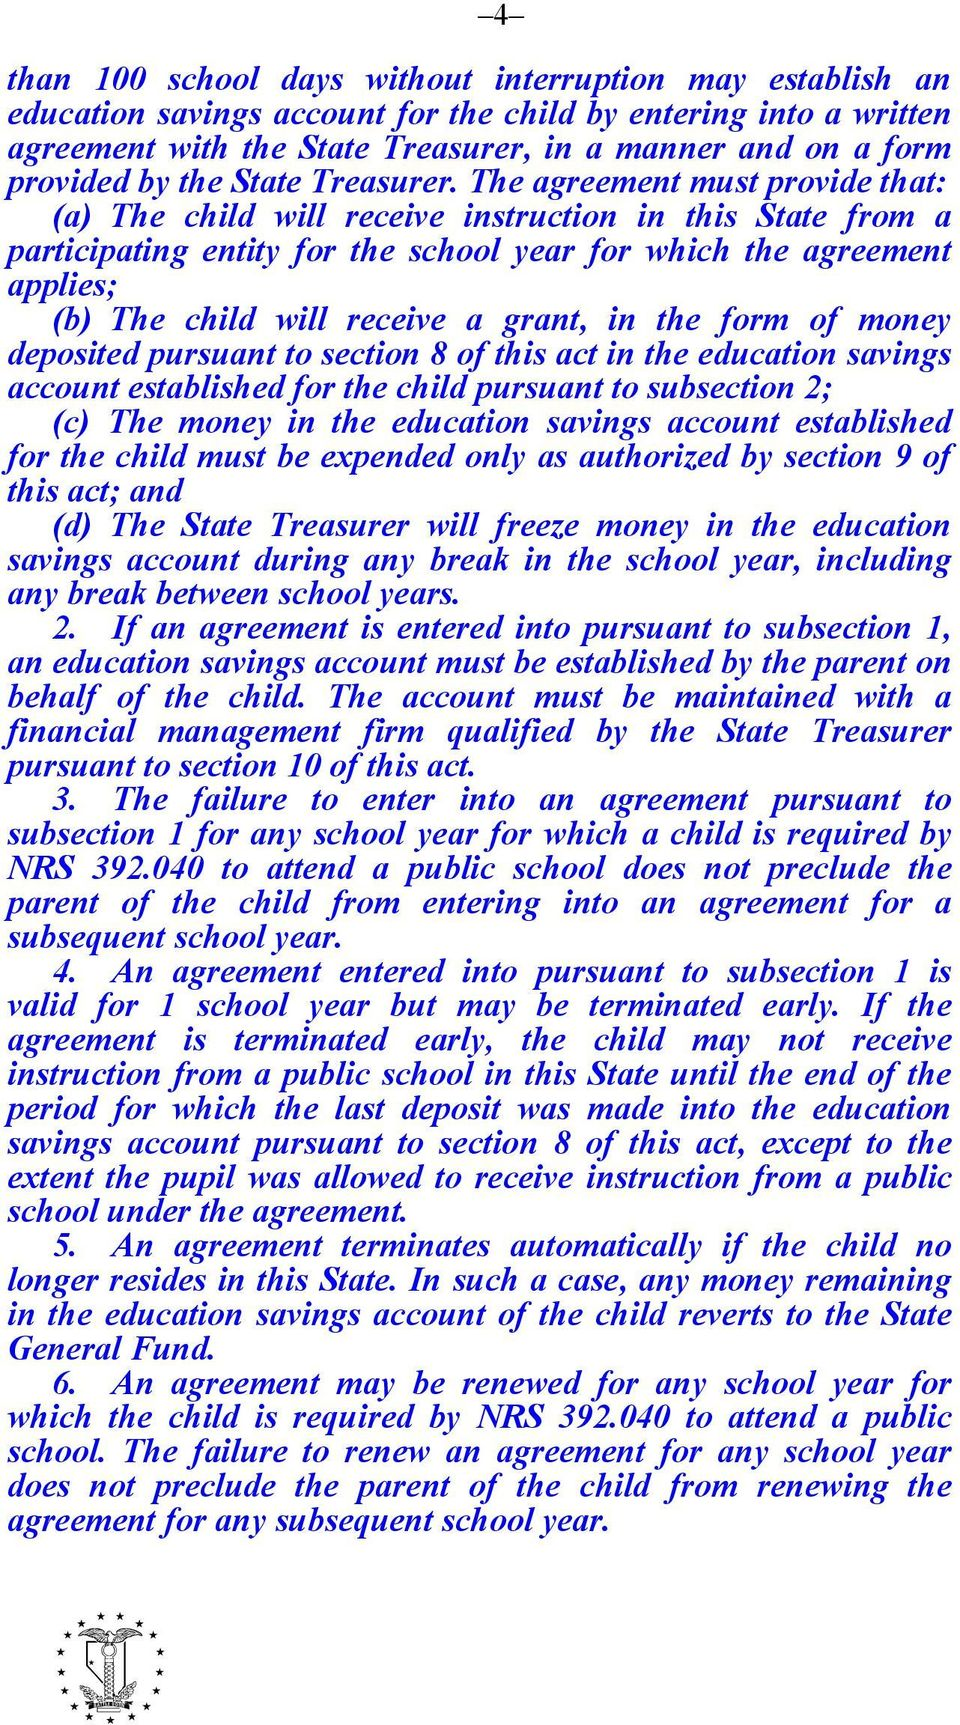 The agreement must provide that: (a) The child will receive instruction in this State from a participating entity for the school year for which the agreement applies; (b) The child will receive a